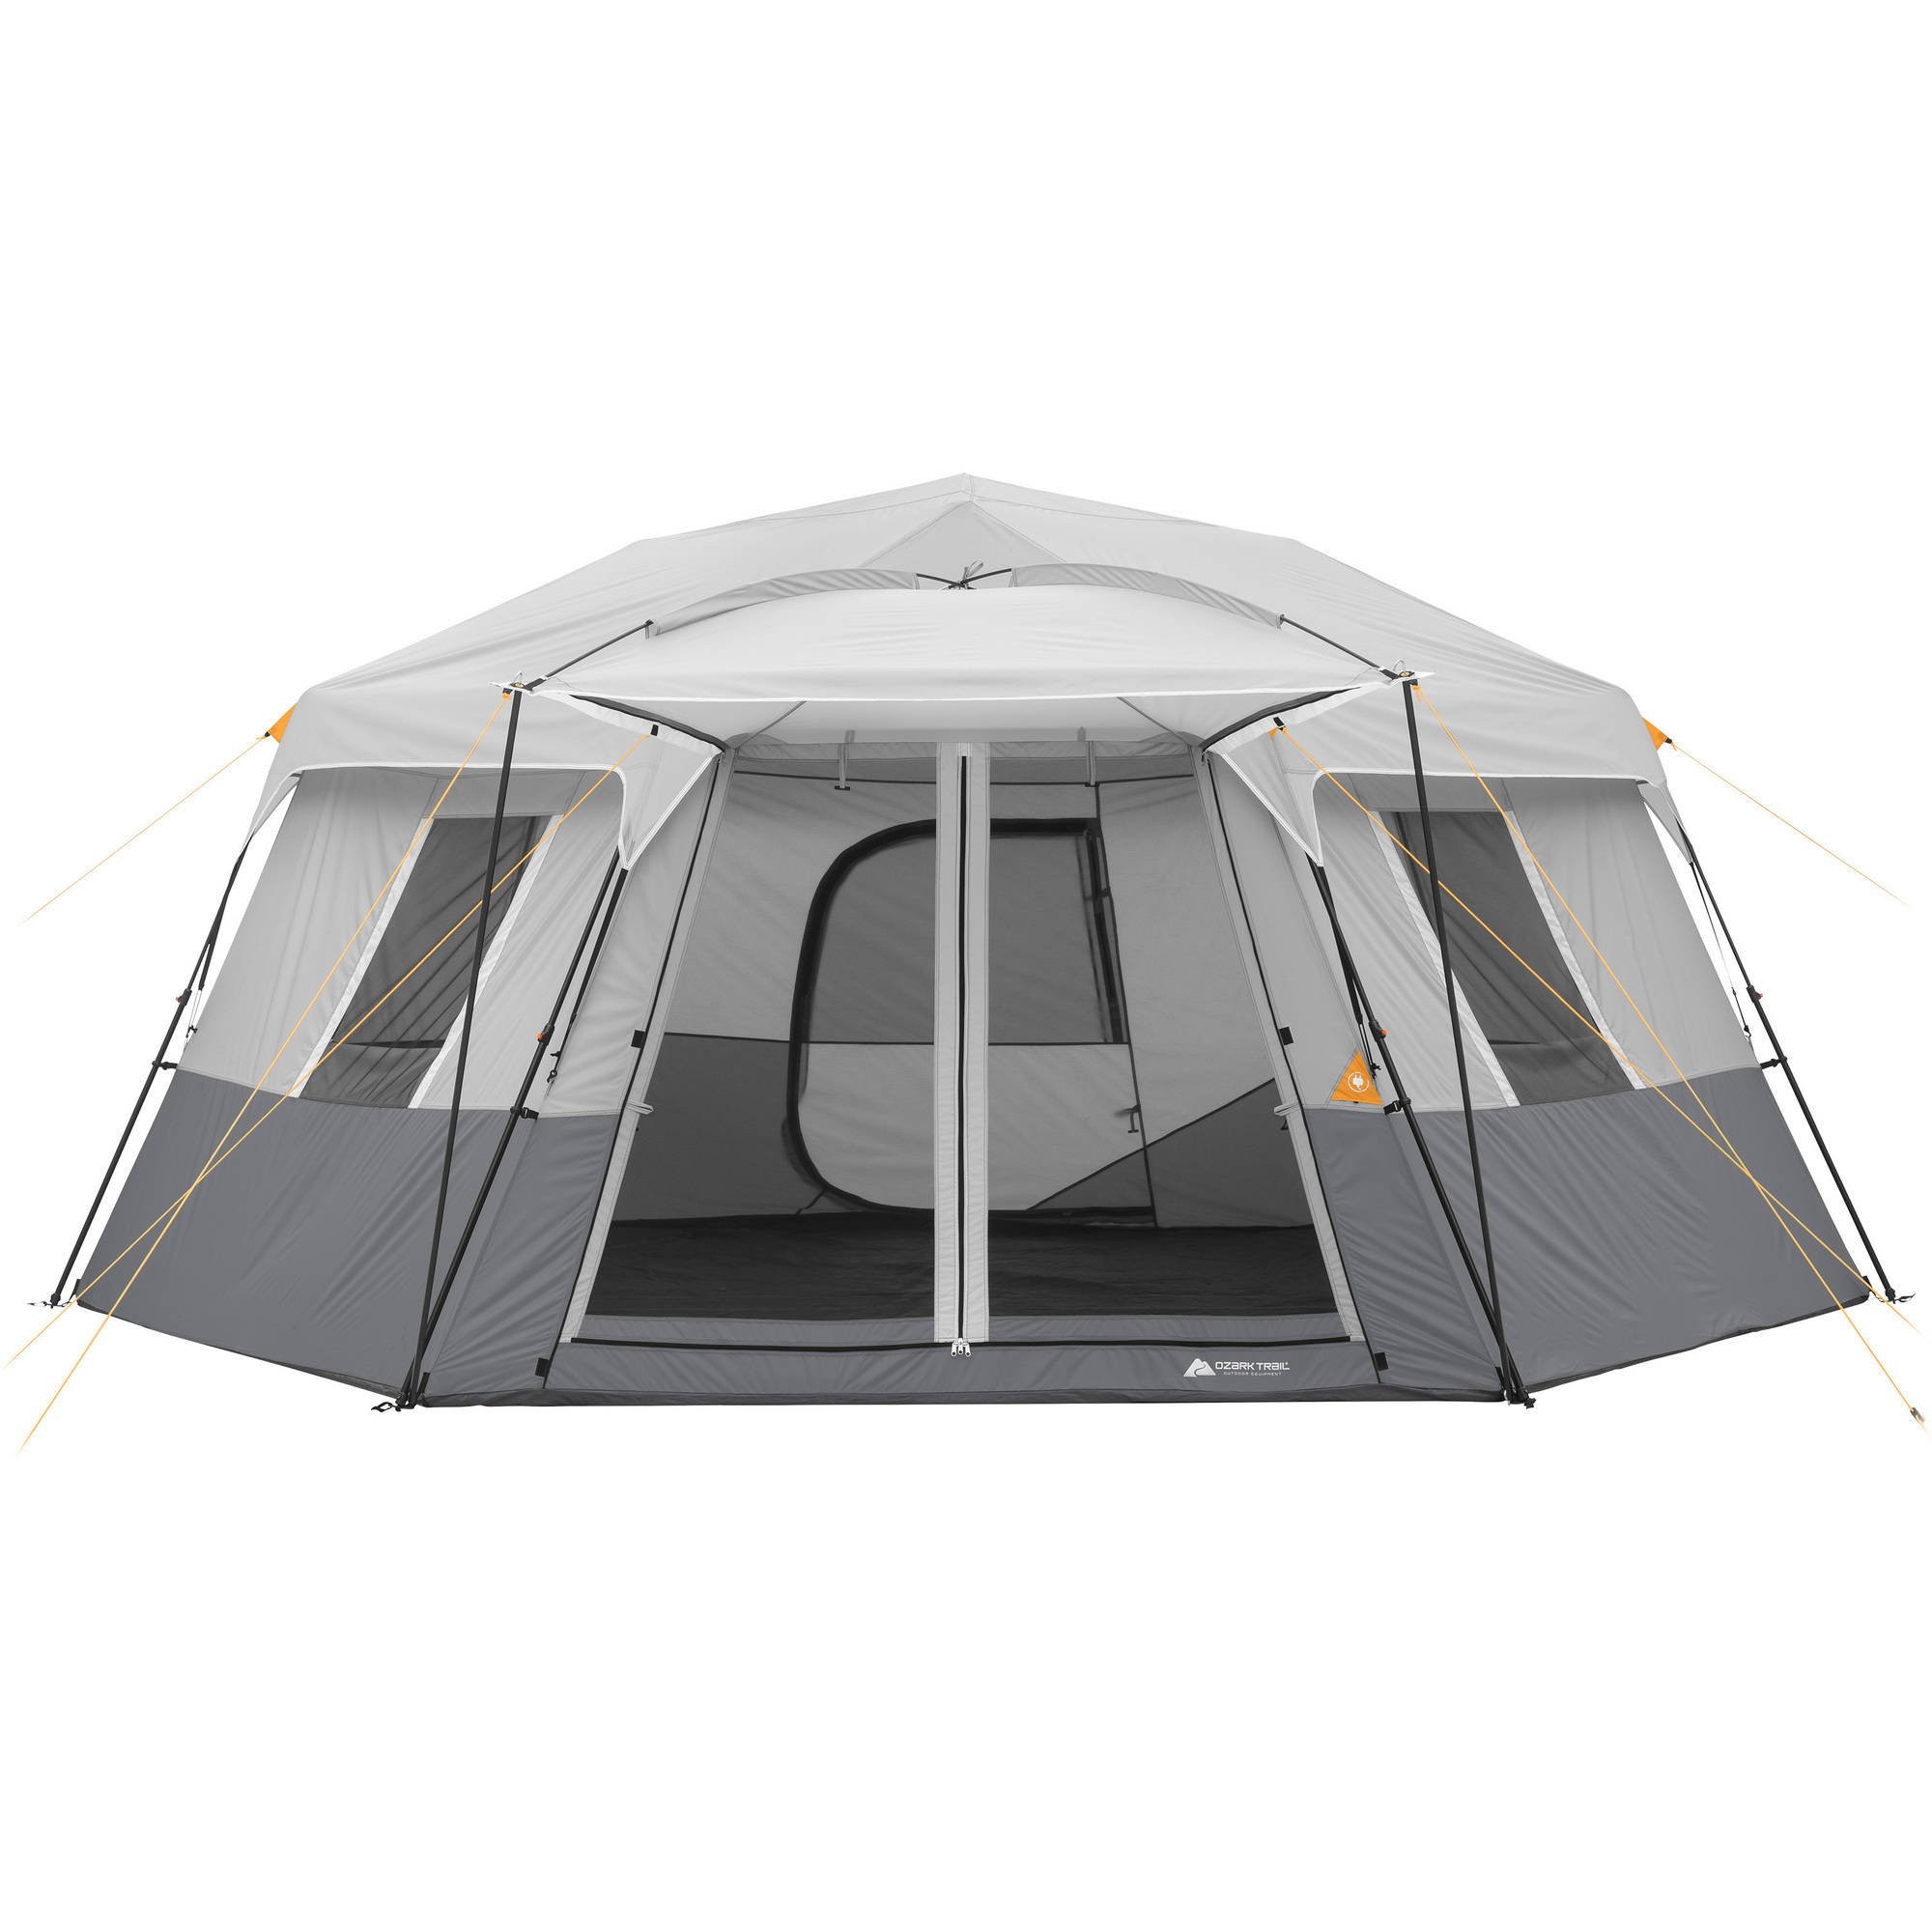 Ozark Trail 17u0027 X 15u0027 Person Instant Hexagon Cabin Tent, Sleeps 11